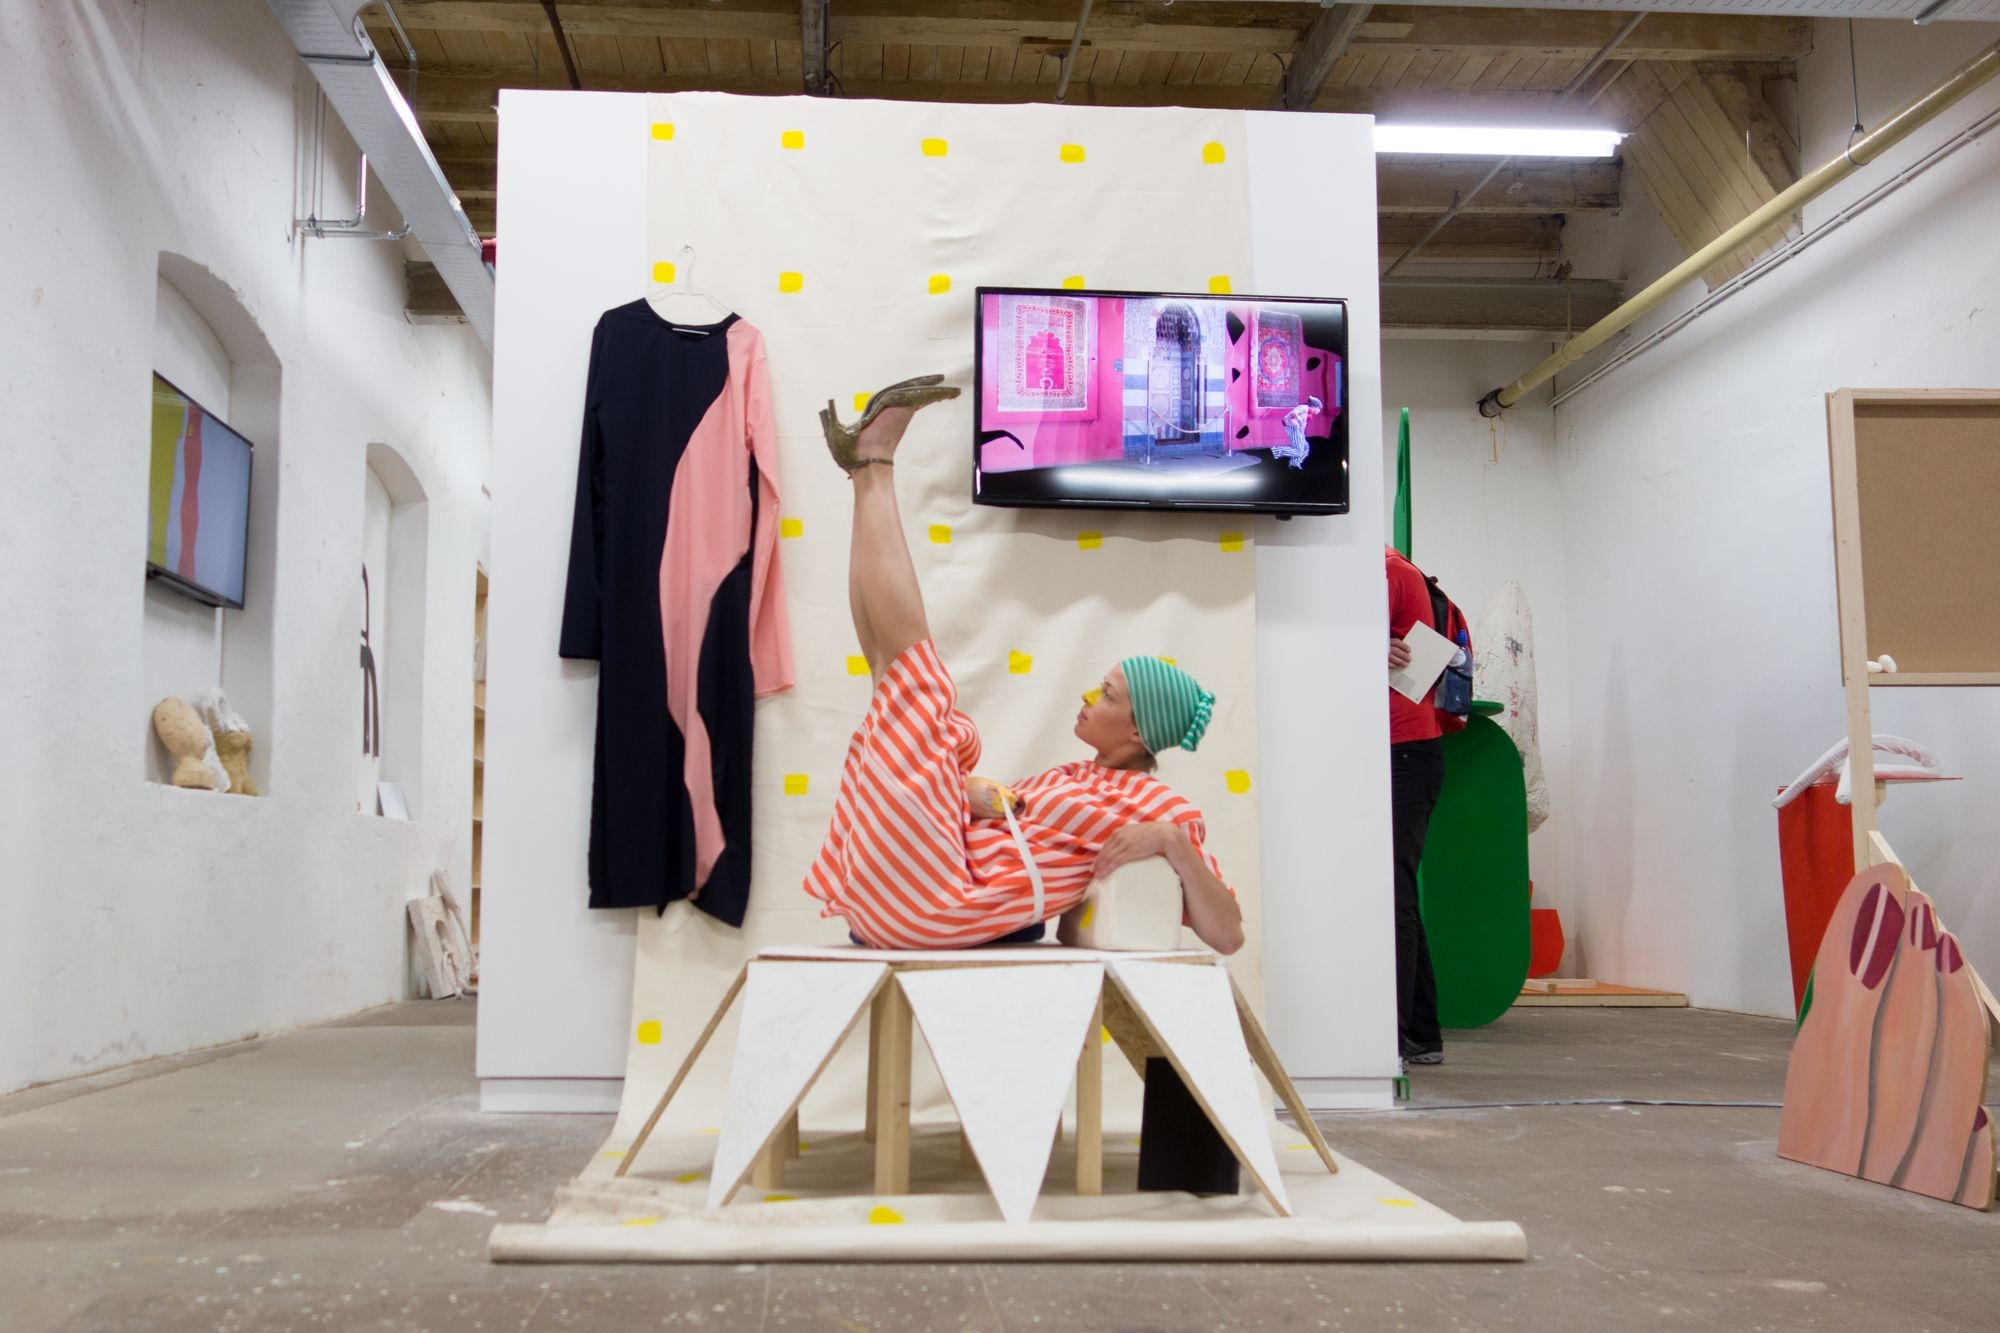 Caz Egelie – I've seen this face before, 2017, dance performance and costume